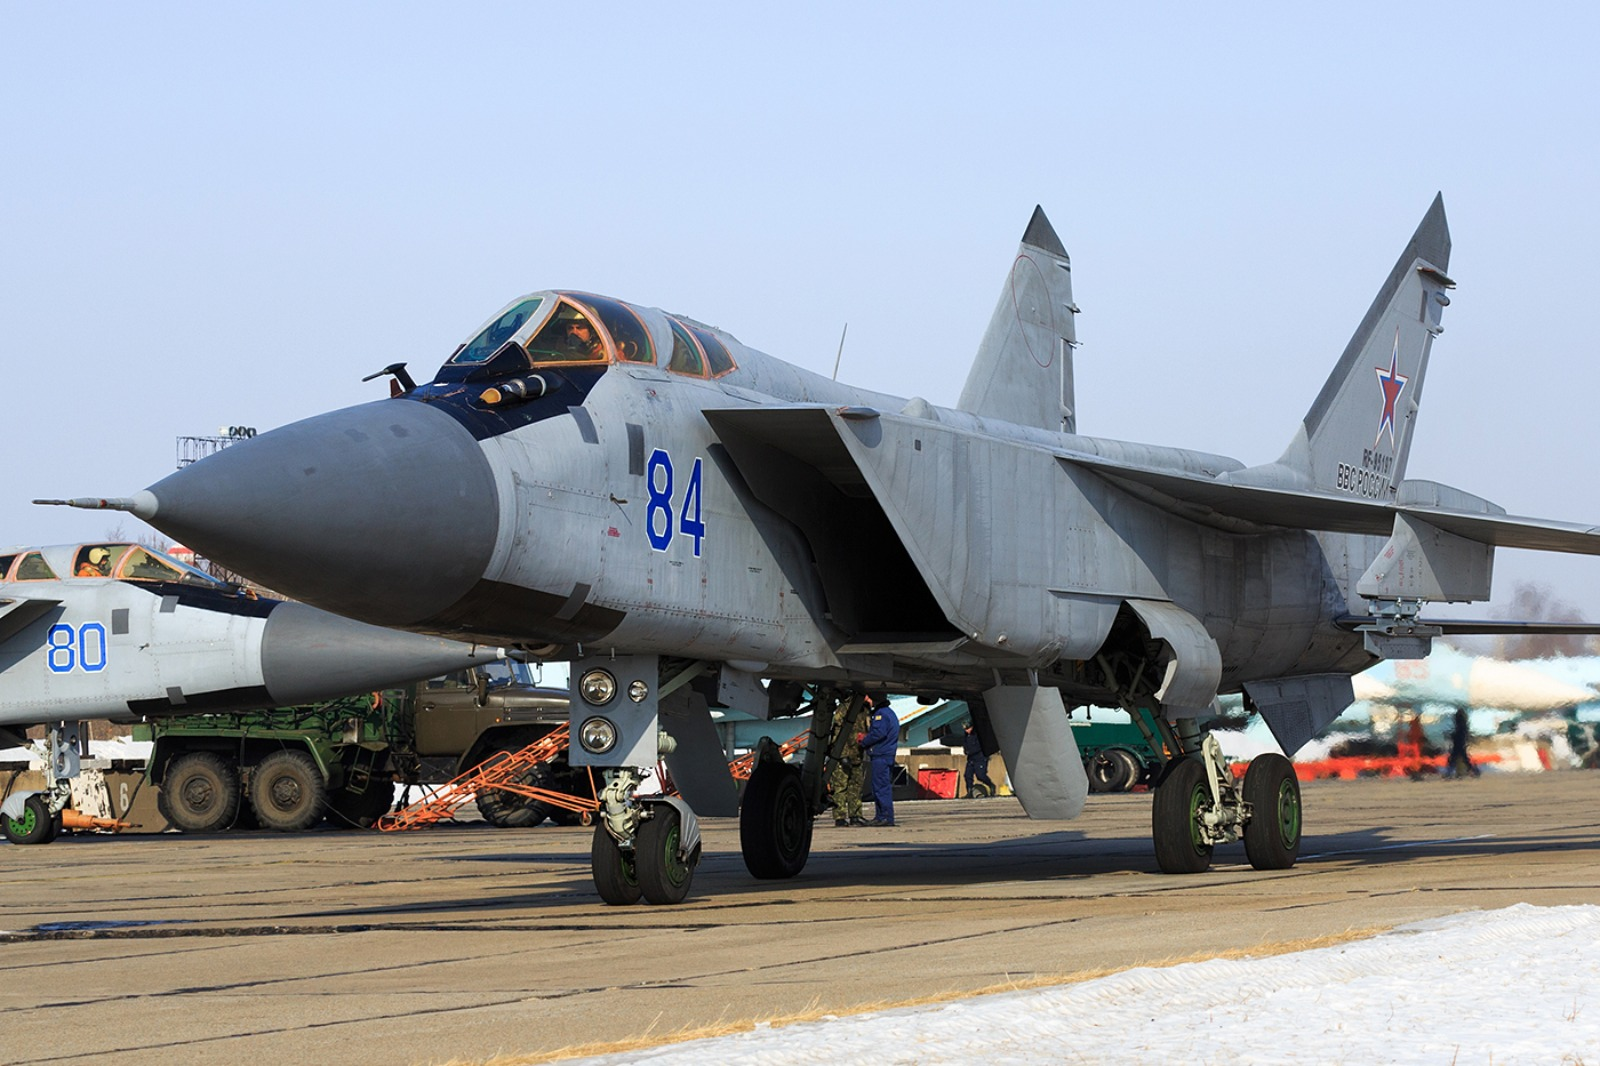 Why are Russian MiG-31 Fighters Firing at Each Other?